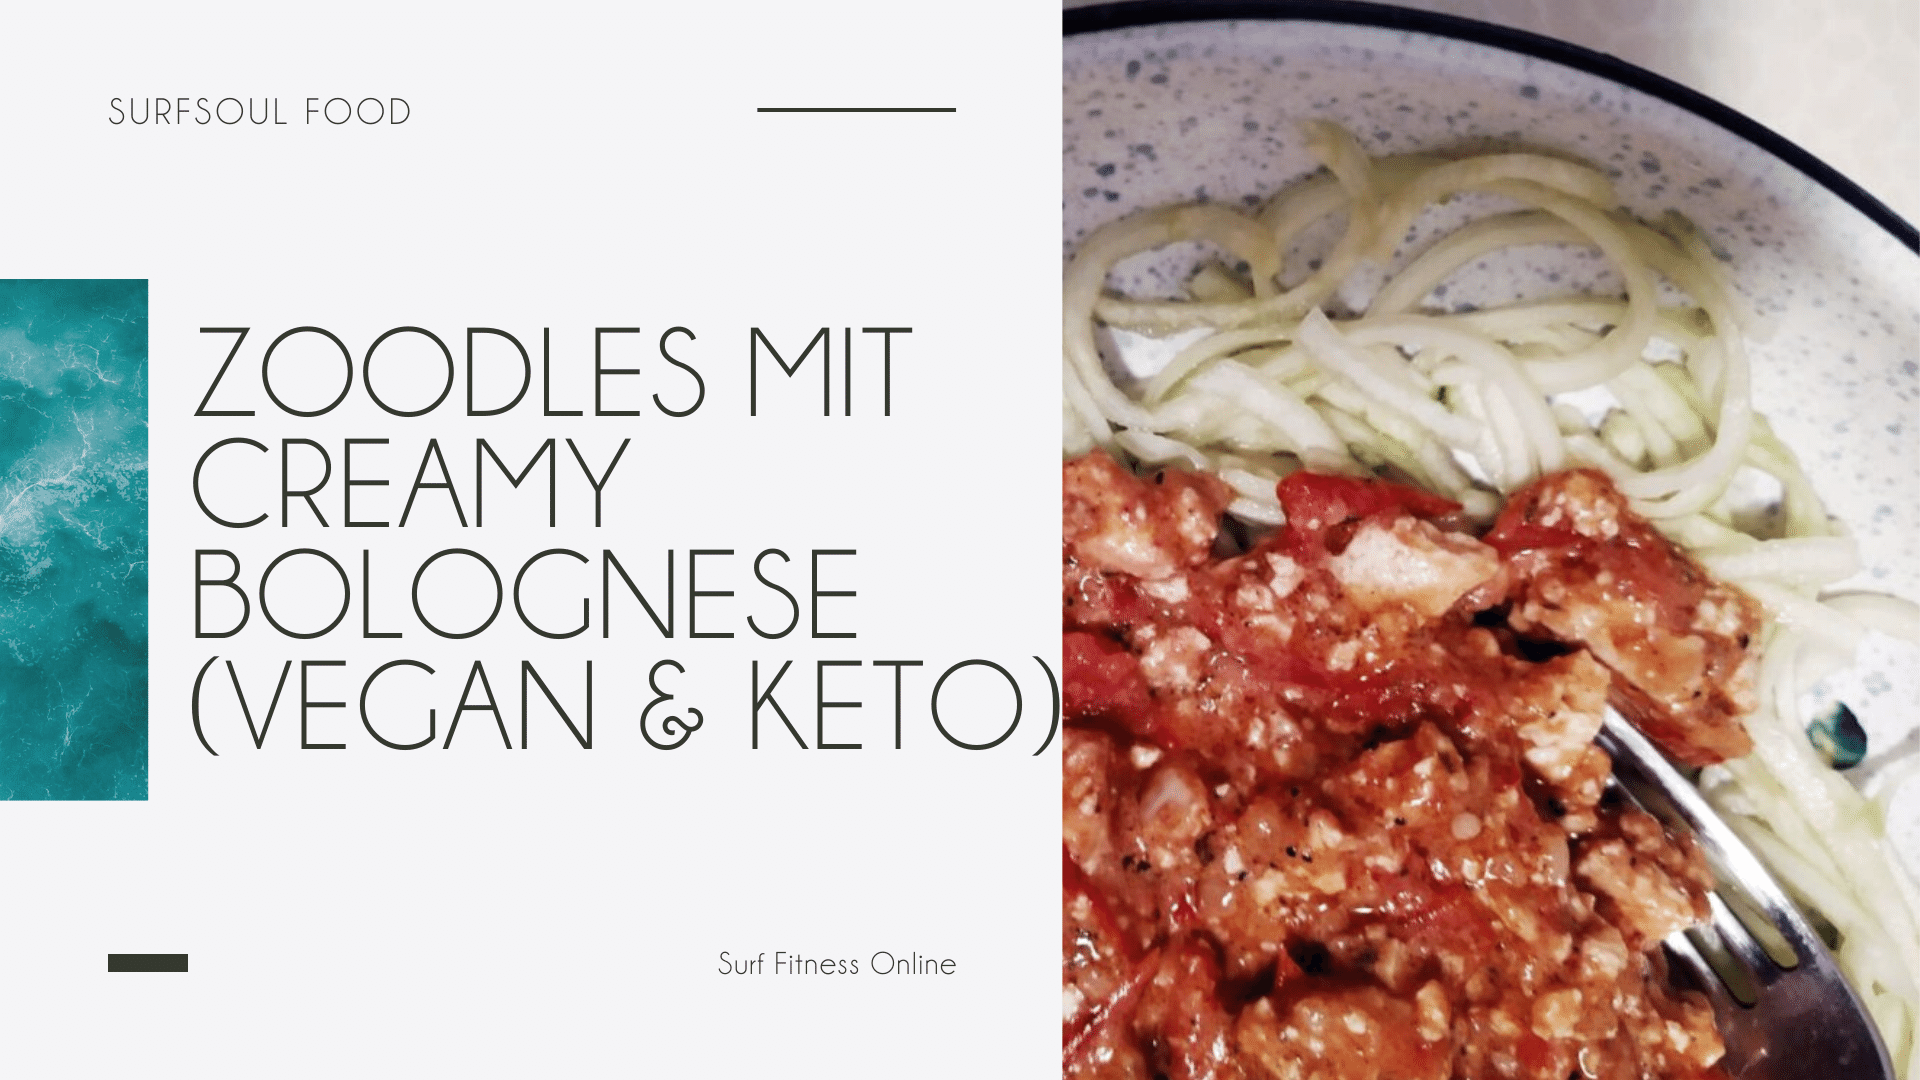 Zoodles in Creamy Bolognese (Vegan & Keto) 1